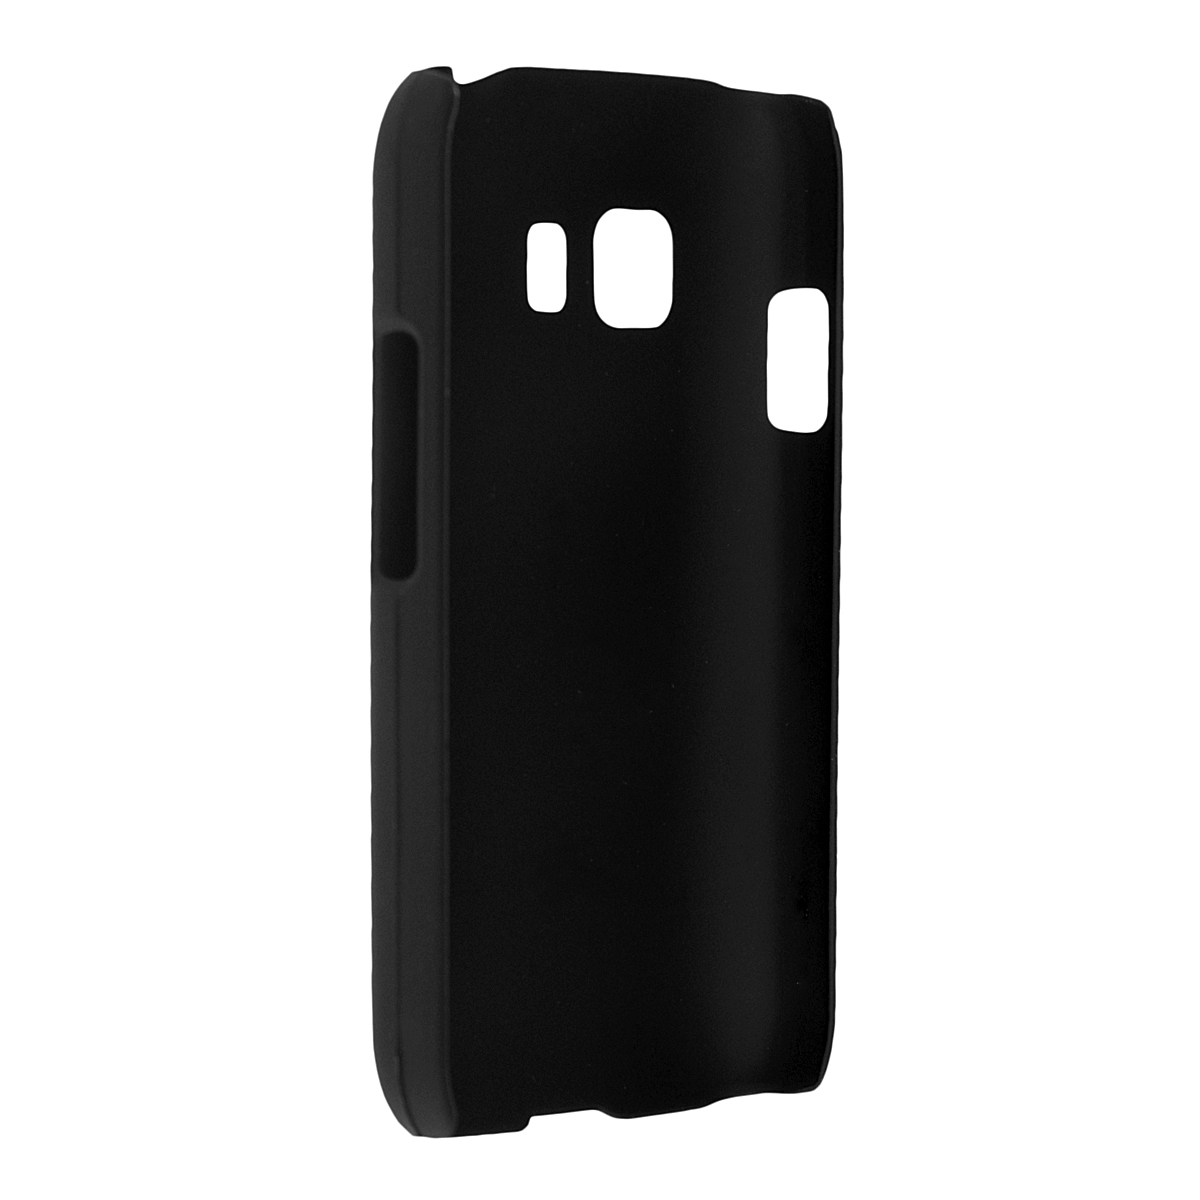 Skinbox Shield 4People чехол для Samsung Galaxy Young 2, Black